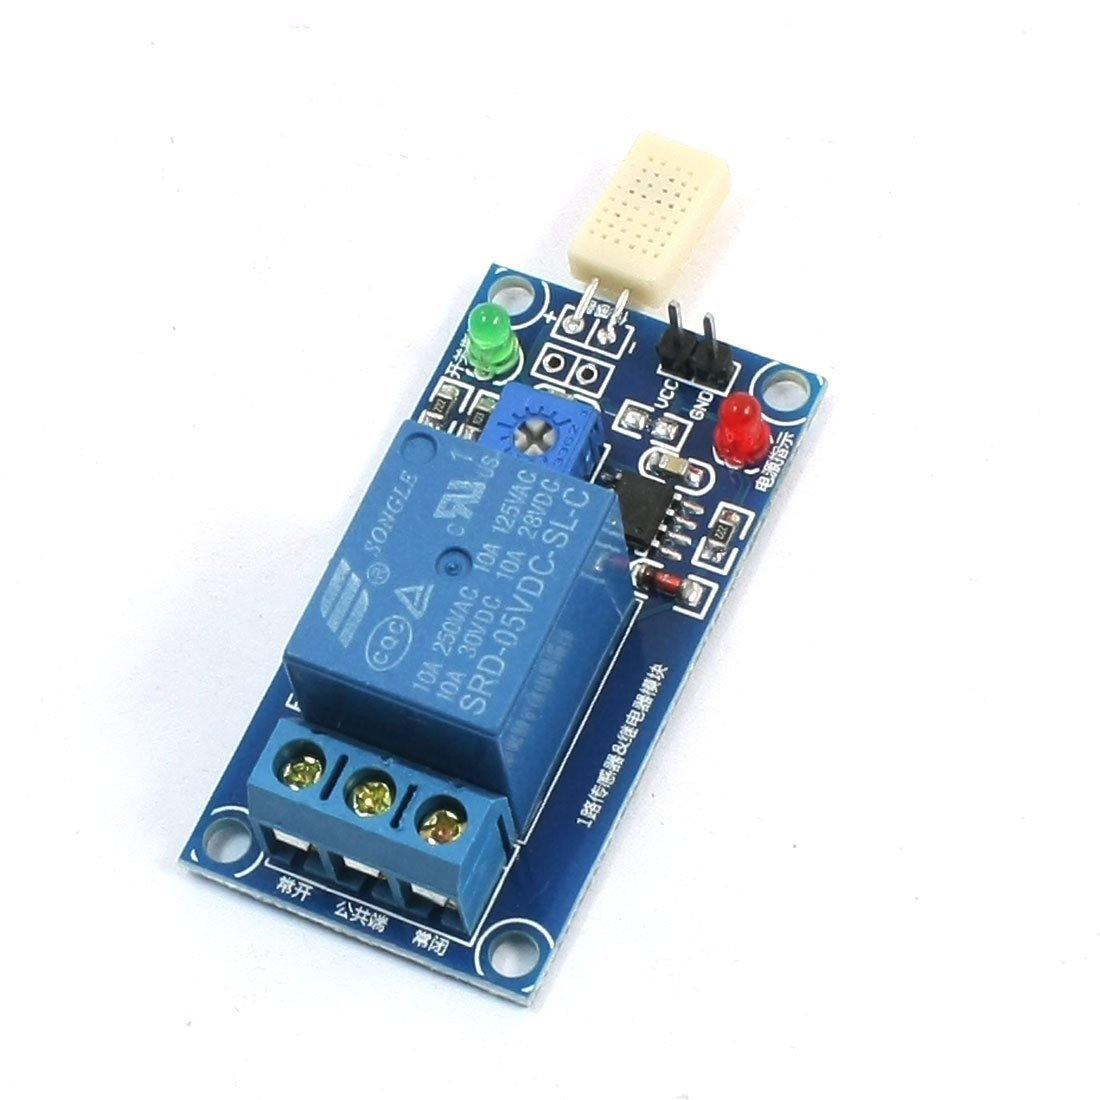 A+++ Electronics Maker DC 5V 1-Channal 1CH Humidity Sensor Switch Relay Module Control Board